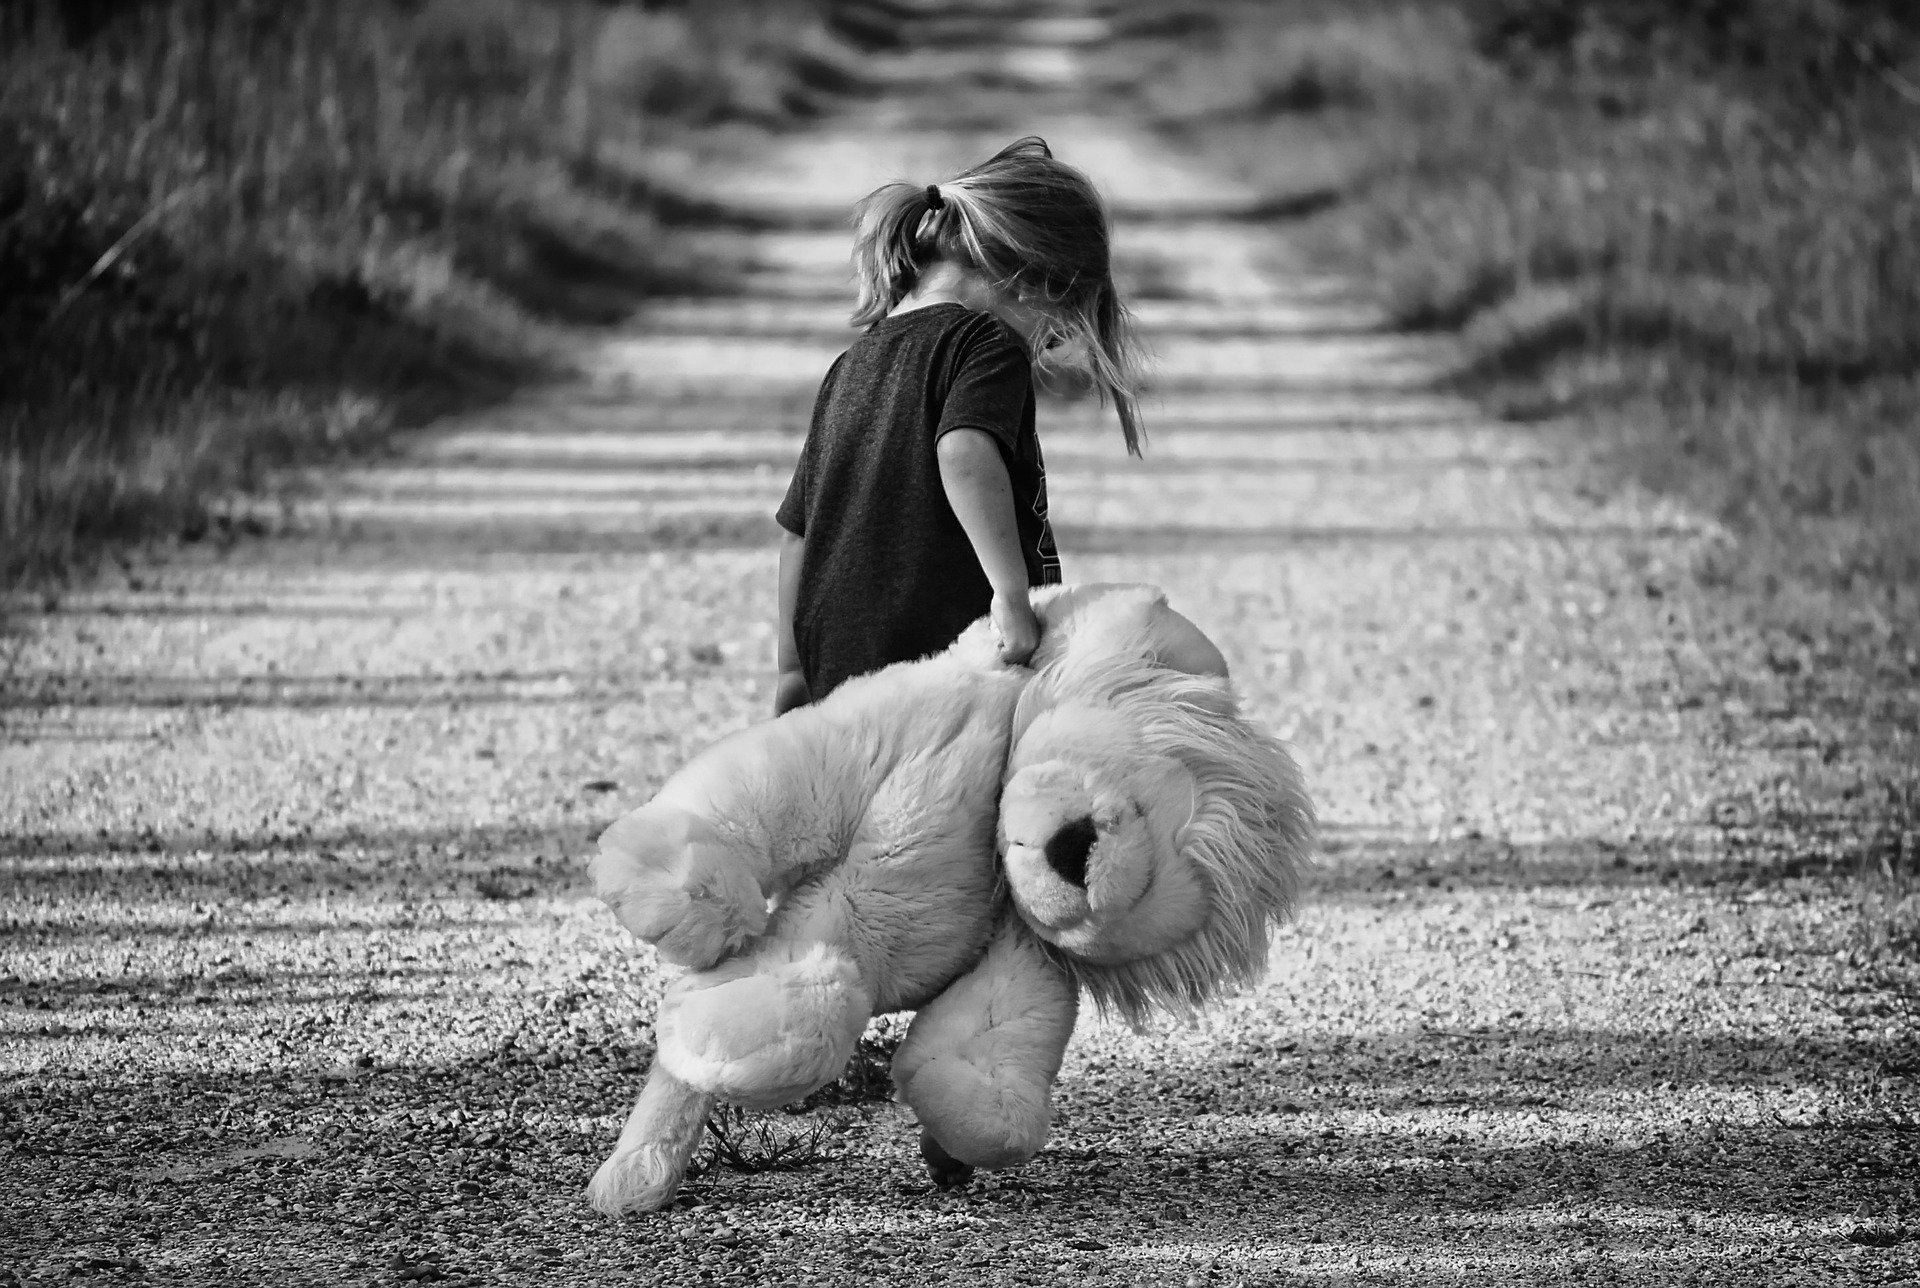 Black and white photograph of lonely girl, dragging teddy bear behind, walking down road alone.